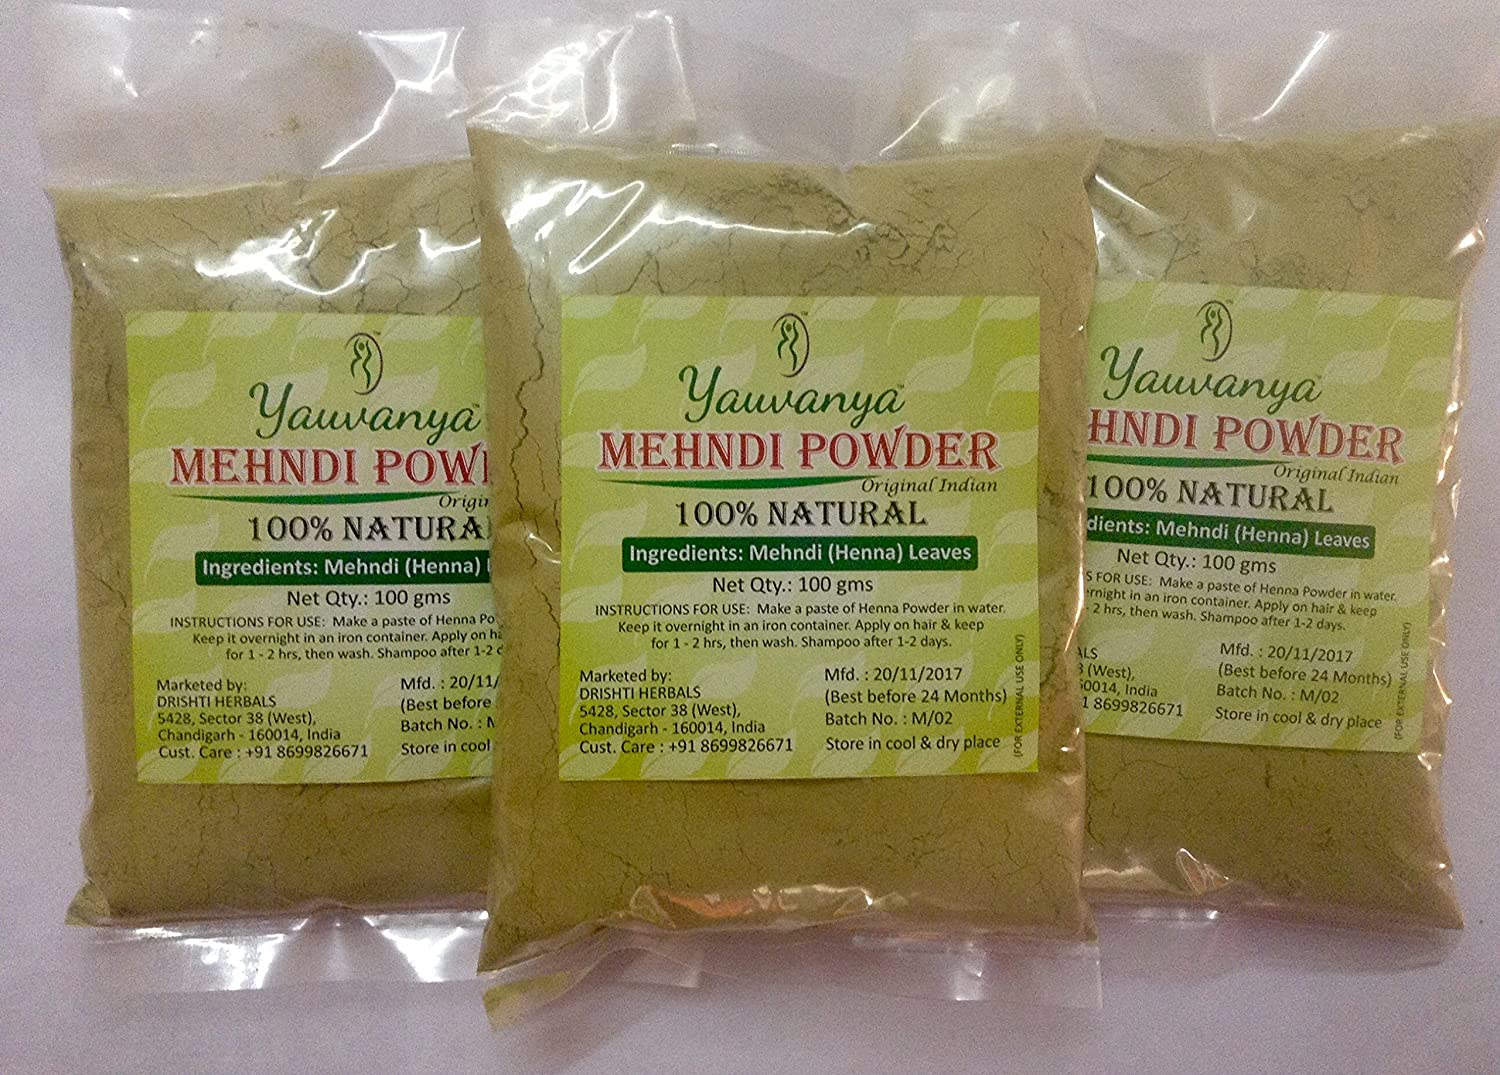 Yauvanya Original Indian Pure and Natural Henna (Mehndi) for Hair - 300 gms (3 Packets of 100 gms each)